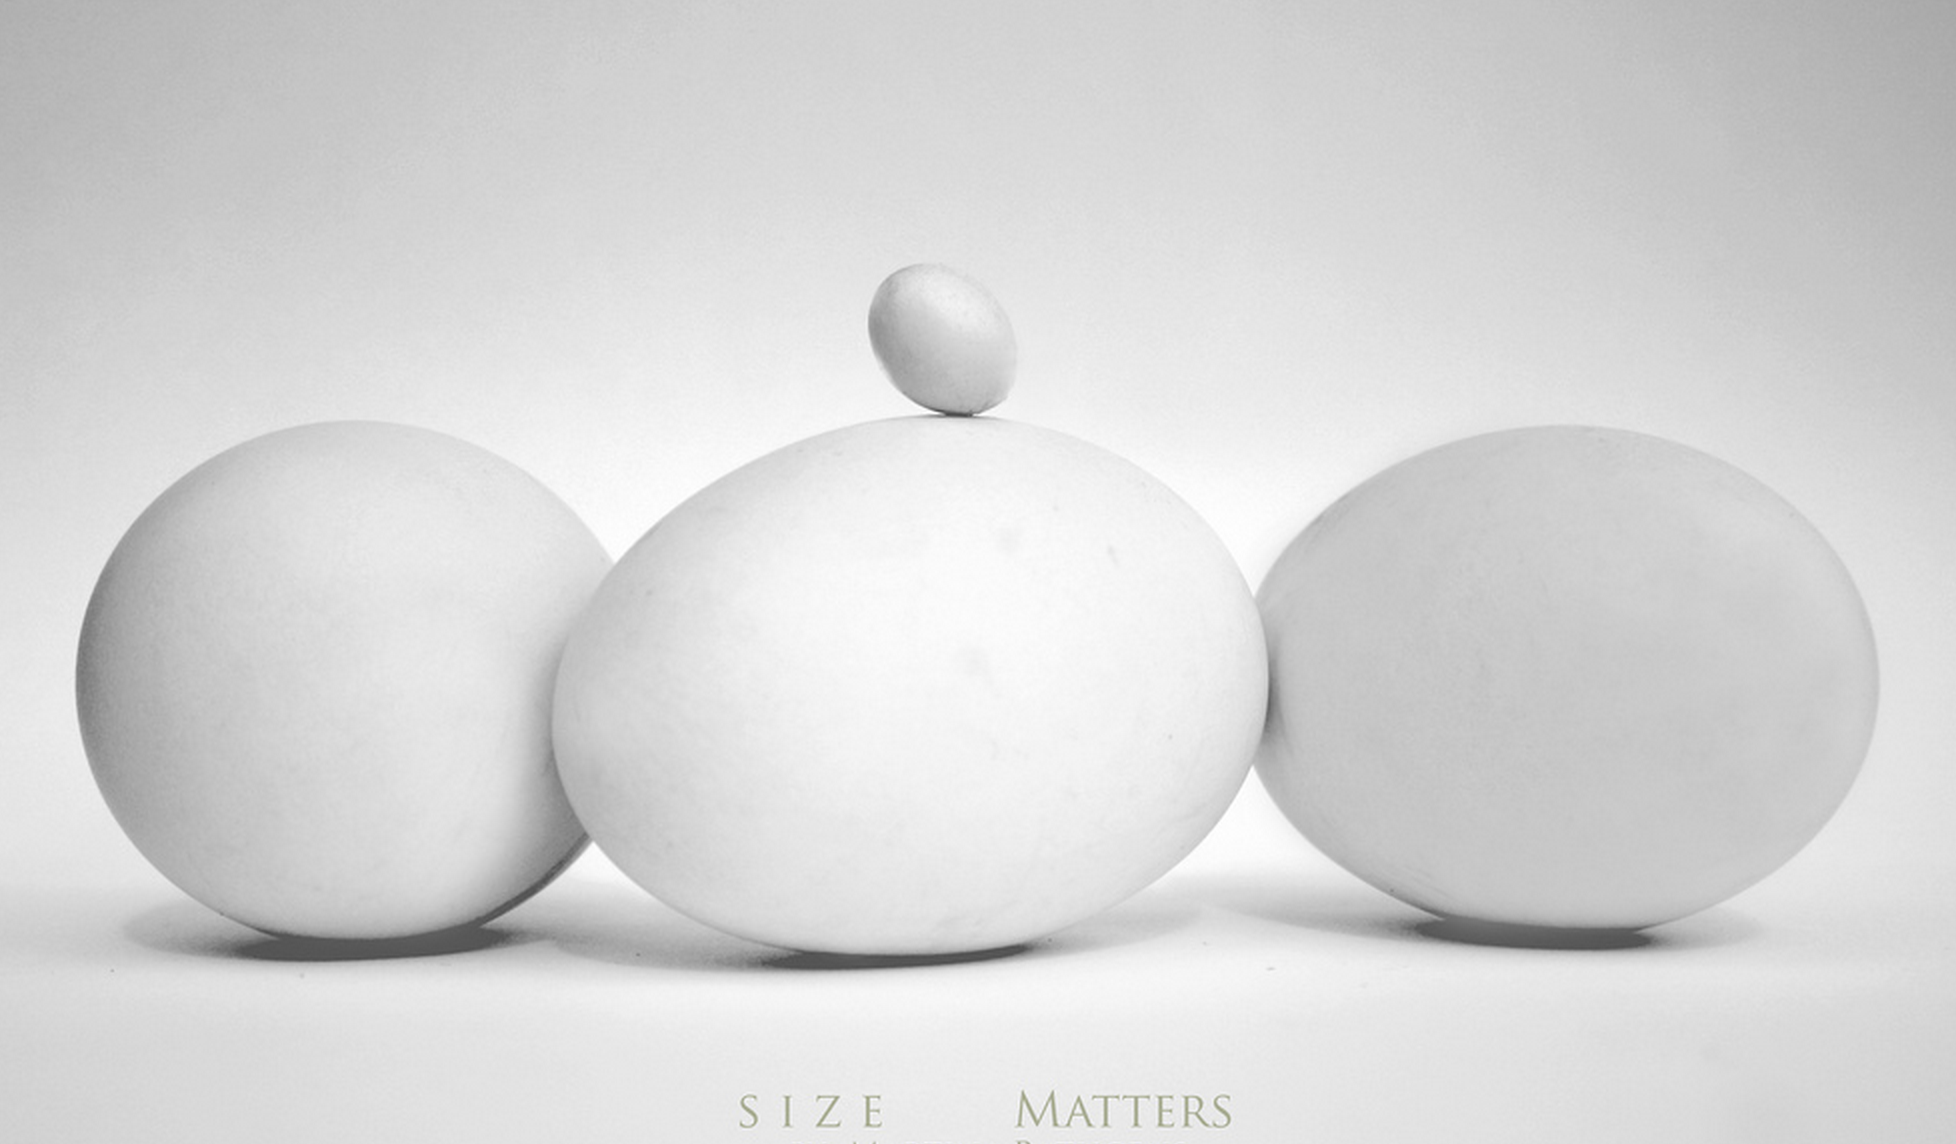 size-matters-eggs